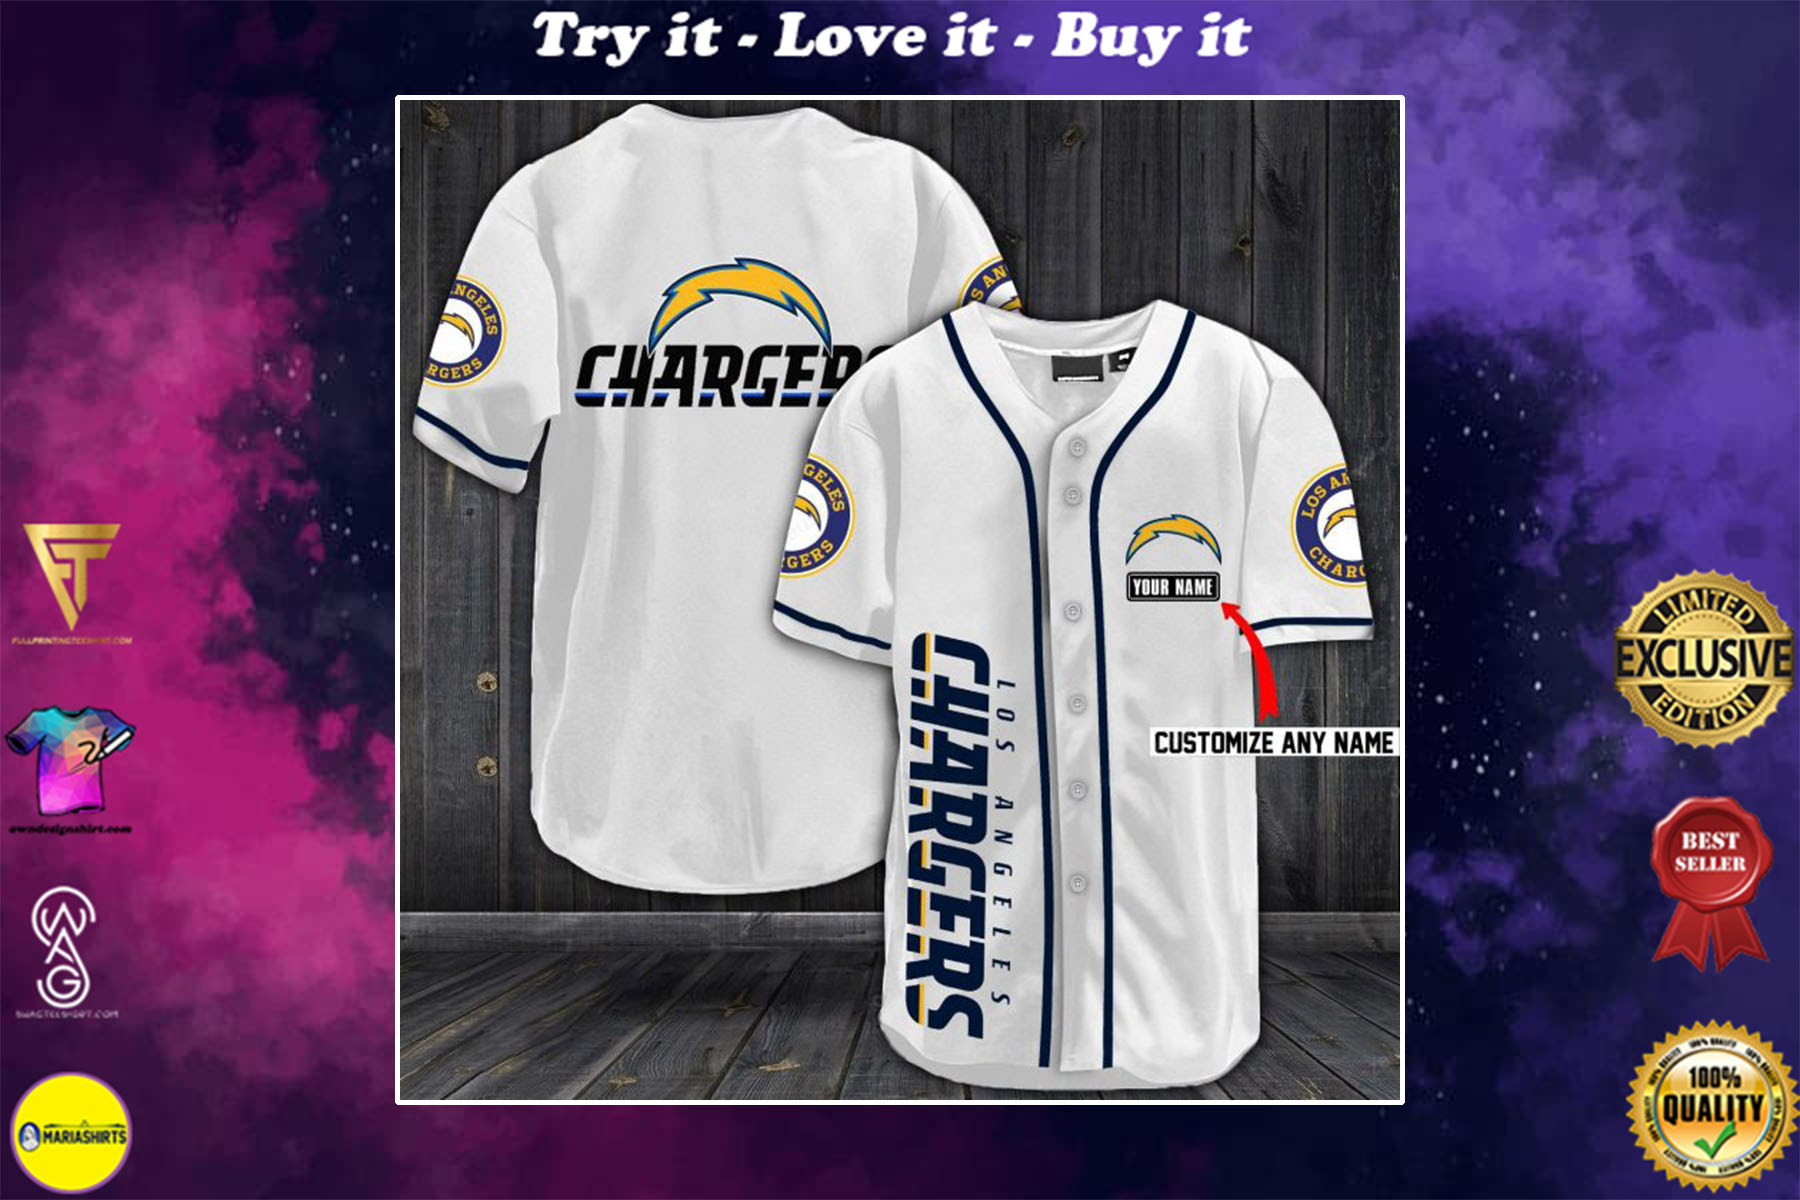 [special edition] personalized name jersey los angeles chargers full printing shirt - maria